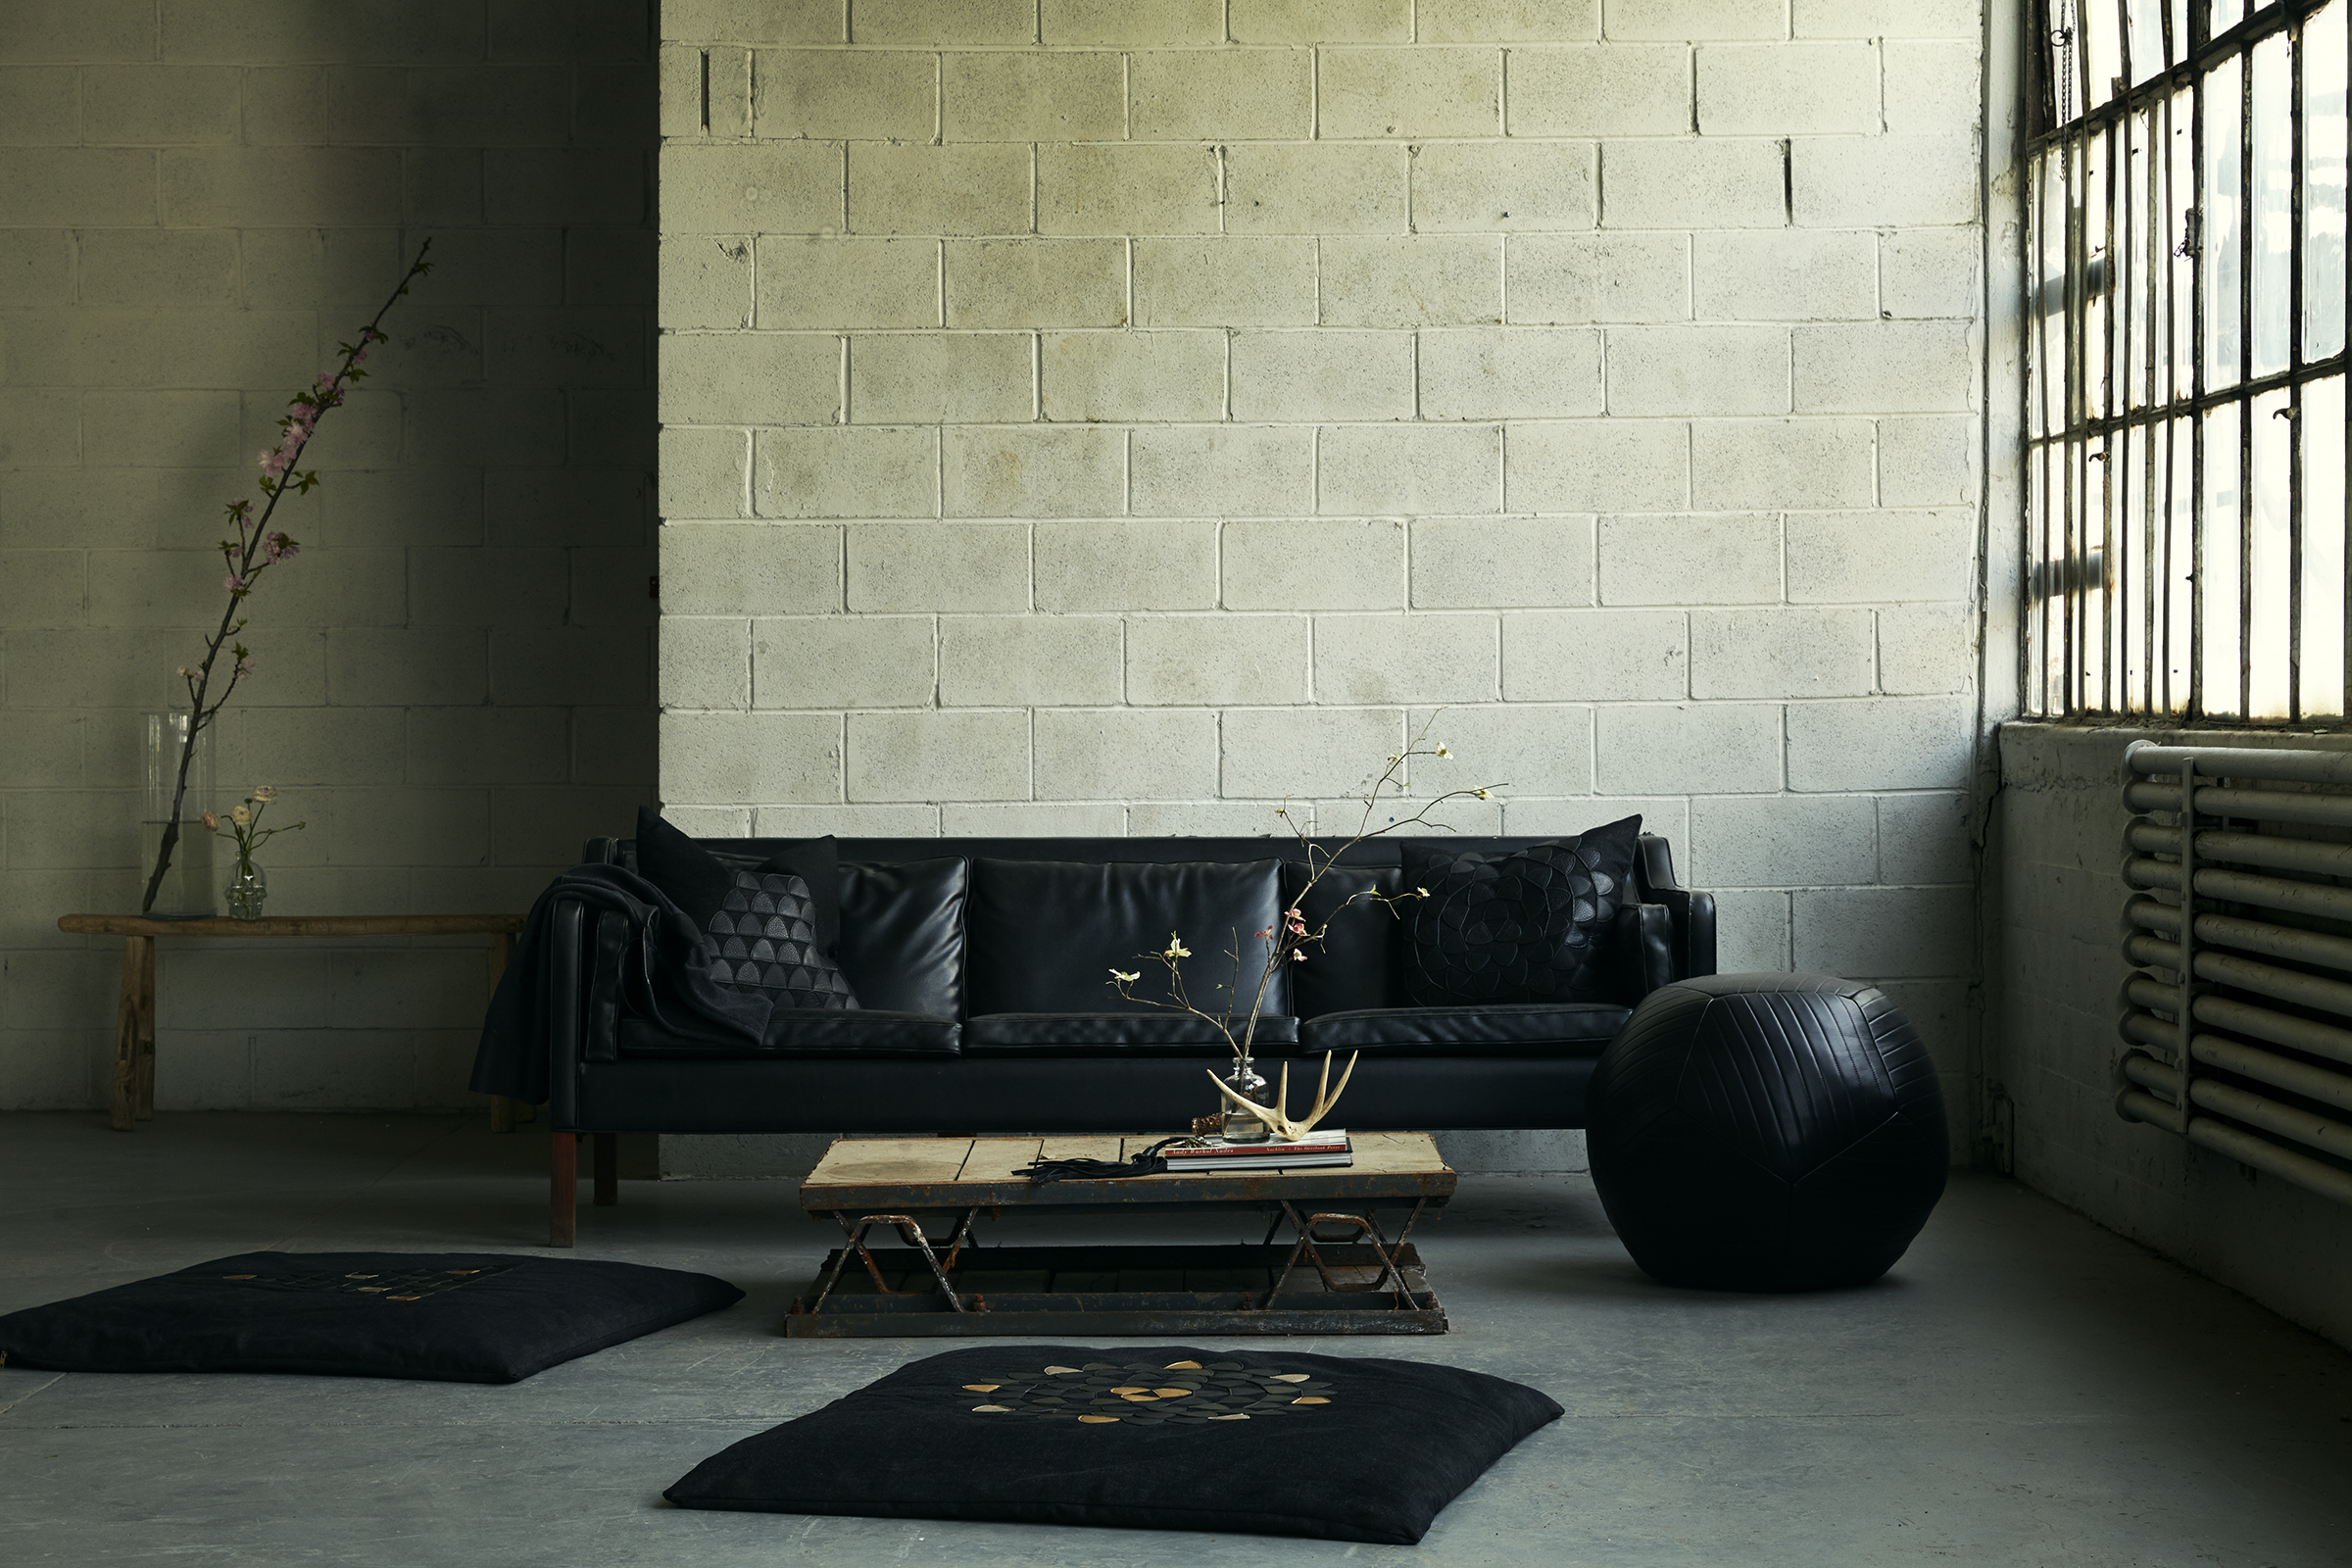 Emblem Pyramid Floor Cushion  in Black Denim with Mixed Metallic leather appliqué,  Emblem Mandala Floor Cushion  in Black Denim with Mixed Metallic leather appliqué,  Large Pyramid Emblem Pillow  in Black Denim with Black leather appliqué ,  Large Mandala Emblem Pillow  in Black Denim with Black leather appliqué,  King Banded Ottoman  in Black and  Whiplash Tassel Bag Accessory  in Black (available upon special request) : Nicole Watts Studio - Brooklyn Loft | Photo: Pär Olofsson